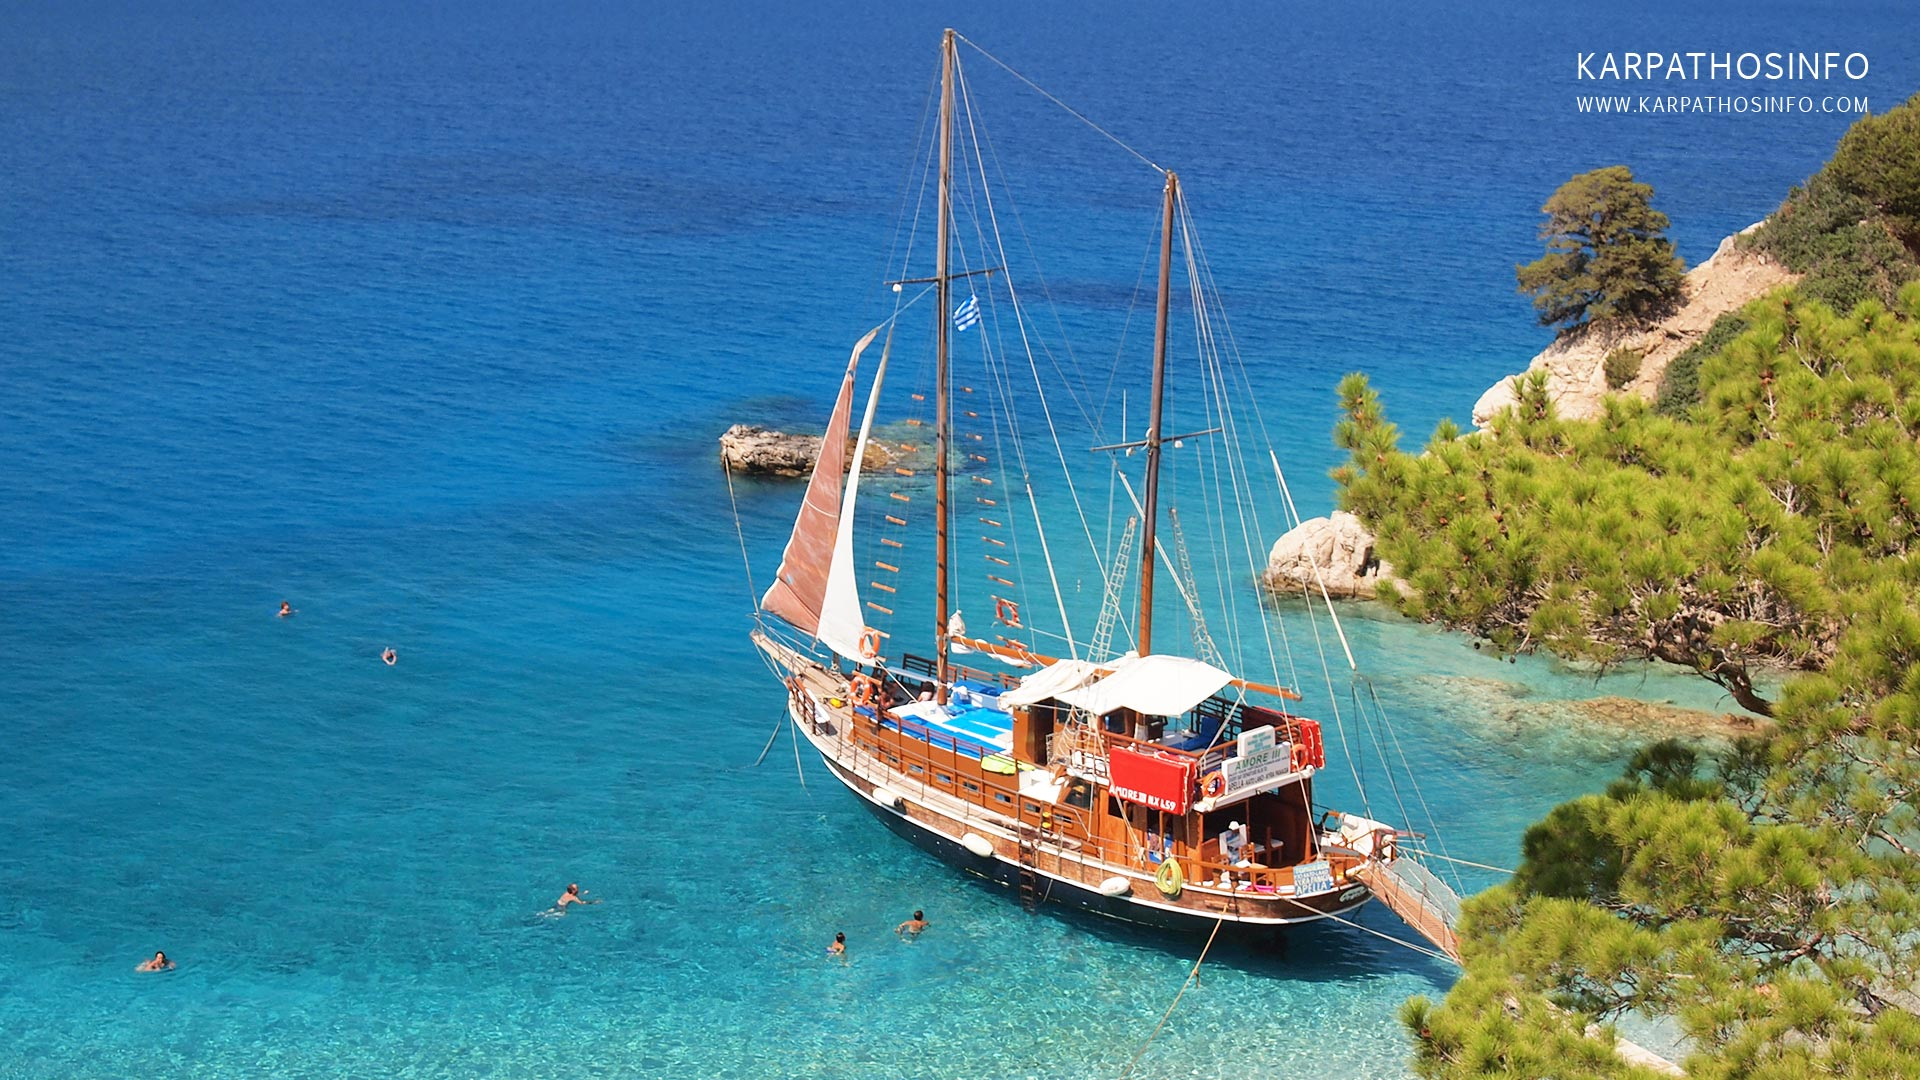 images/slider/boat-excursions-in-karpathos.jpg